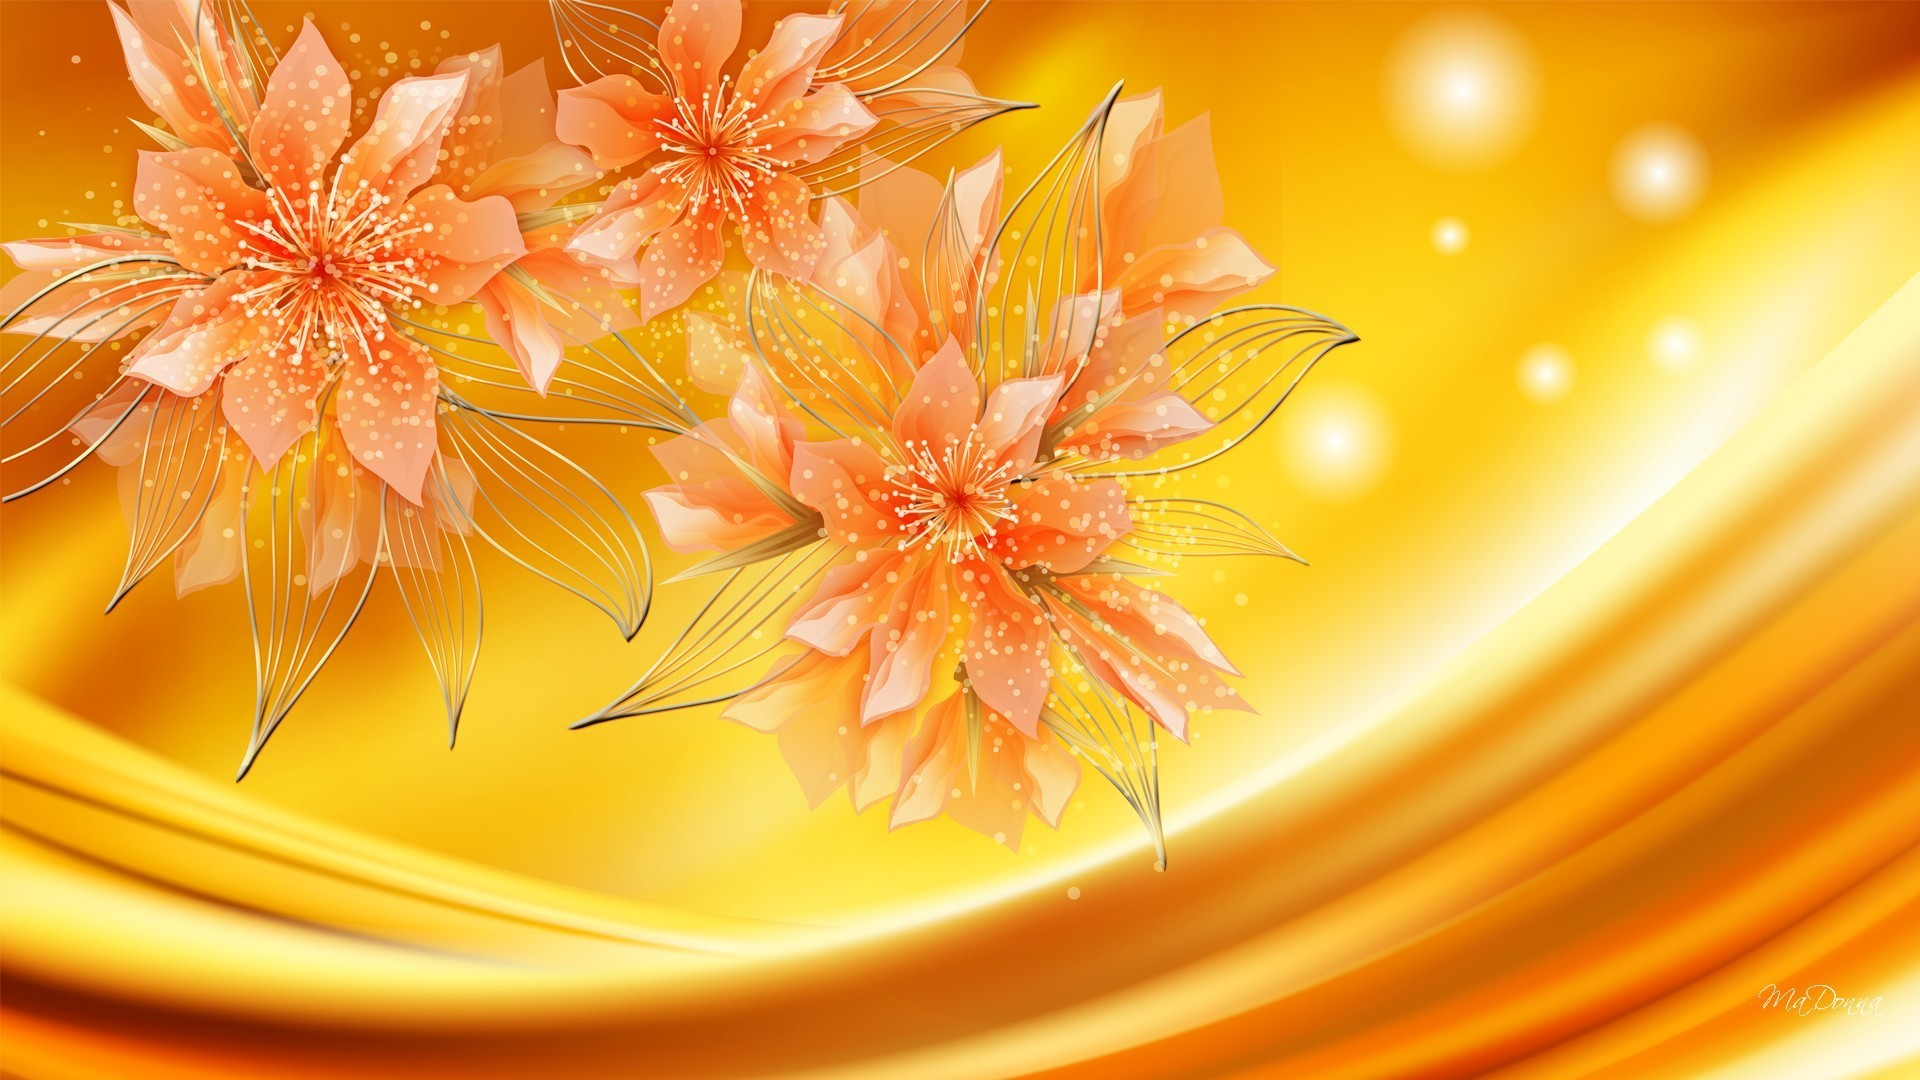 Shine Orange Waves Sparkle Autumn Gold Glow Color Colors Flowers Swirls Fall  Amber Abstract Wave Flower Wallpaper Desktop Full Size Detail